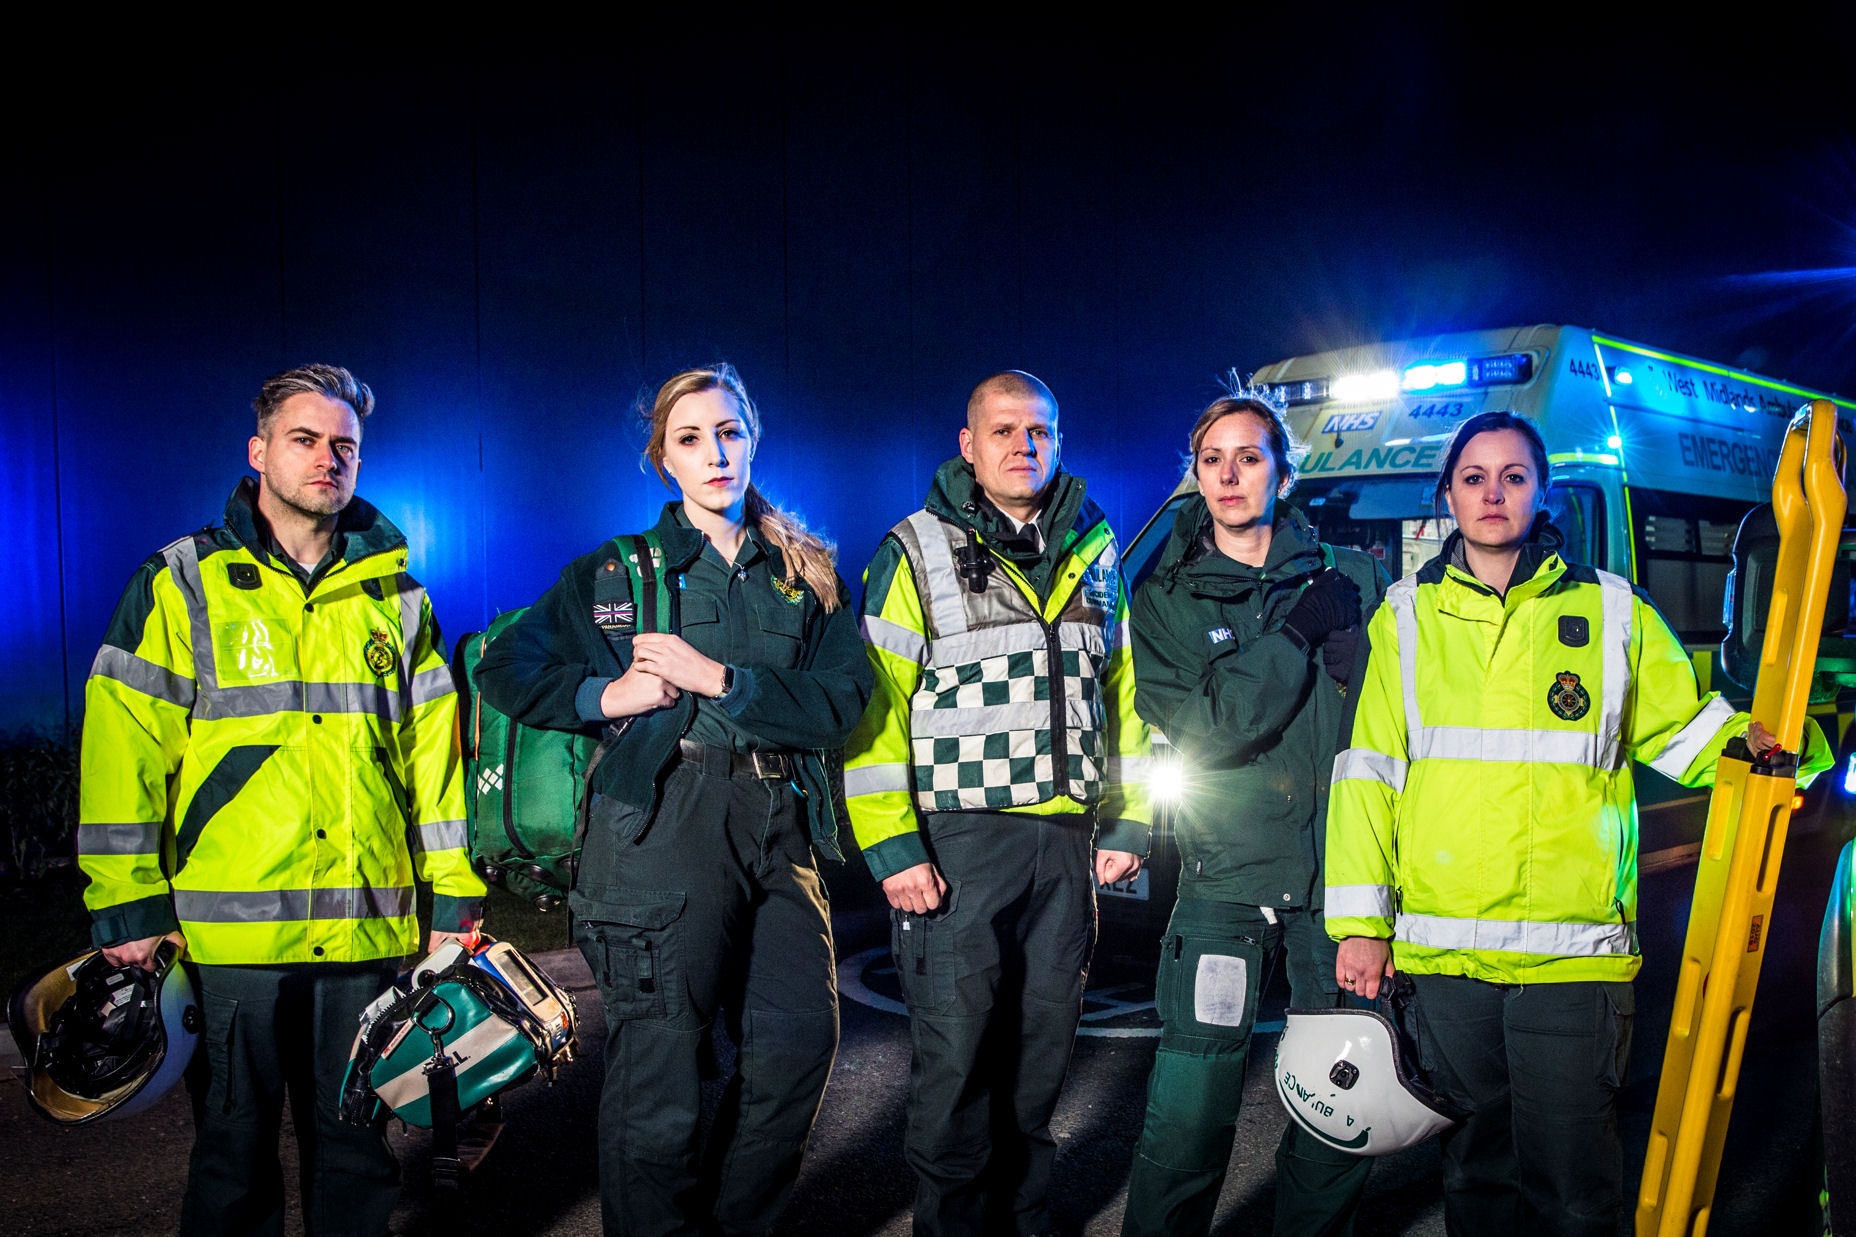 Popular show Ambulance to return